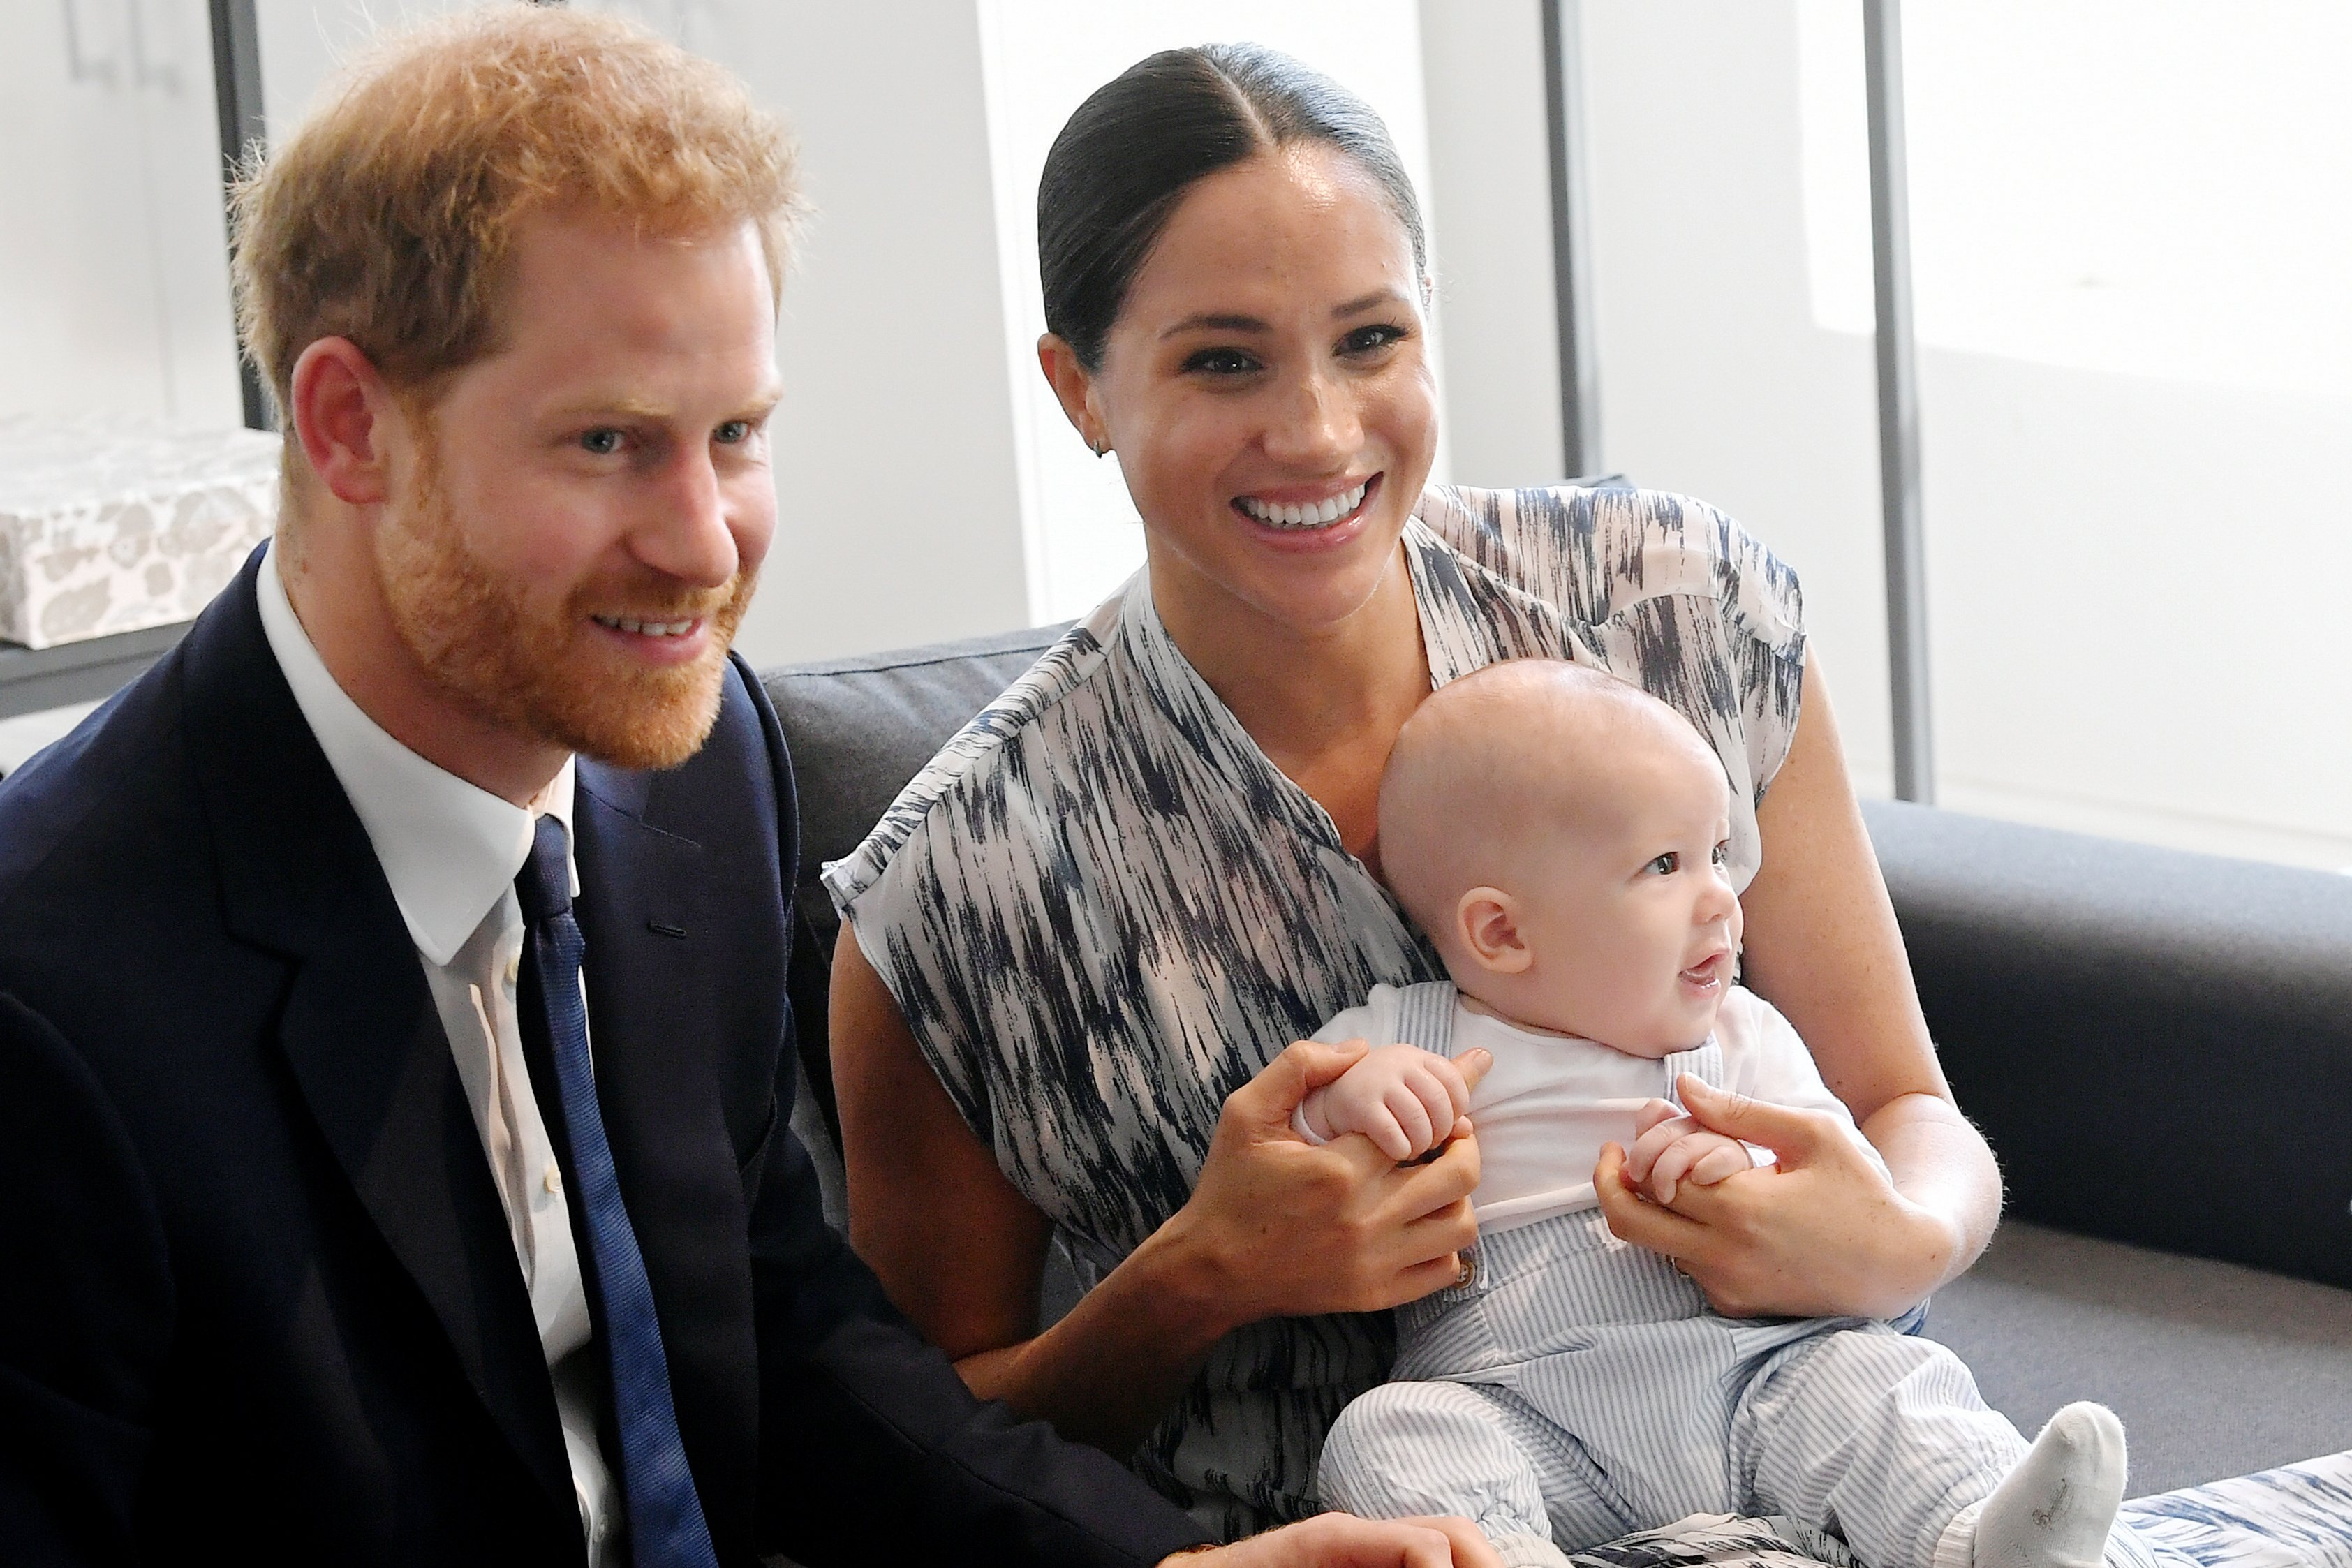 Prince Harry, Meghan, and their baby son Archie Mountbatten-Windsor meet Archbishop Desmond Tutu during their royal tour of South Africa on September 25, 2019, in Cape Town, South Africa | Photo: Getty Images